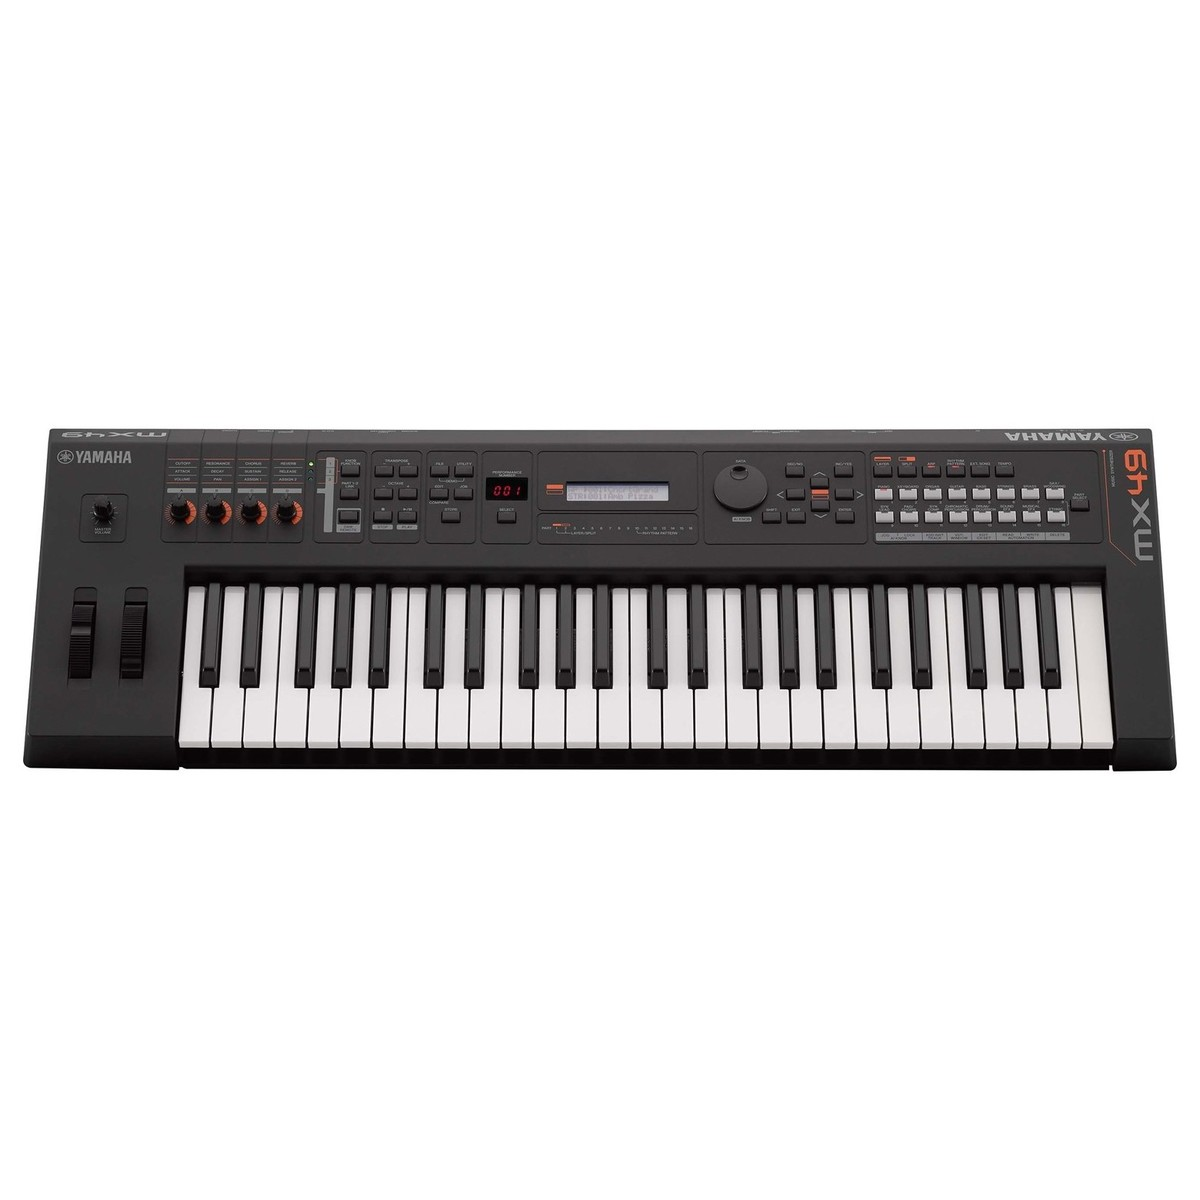 yamaha mx49 ii music production synthesizer black b stock at gear4music. Black Bedroom Furniture Sets. Home Design Ideas